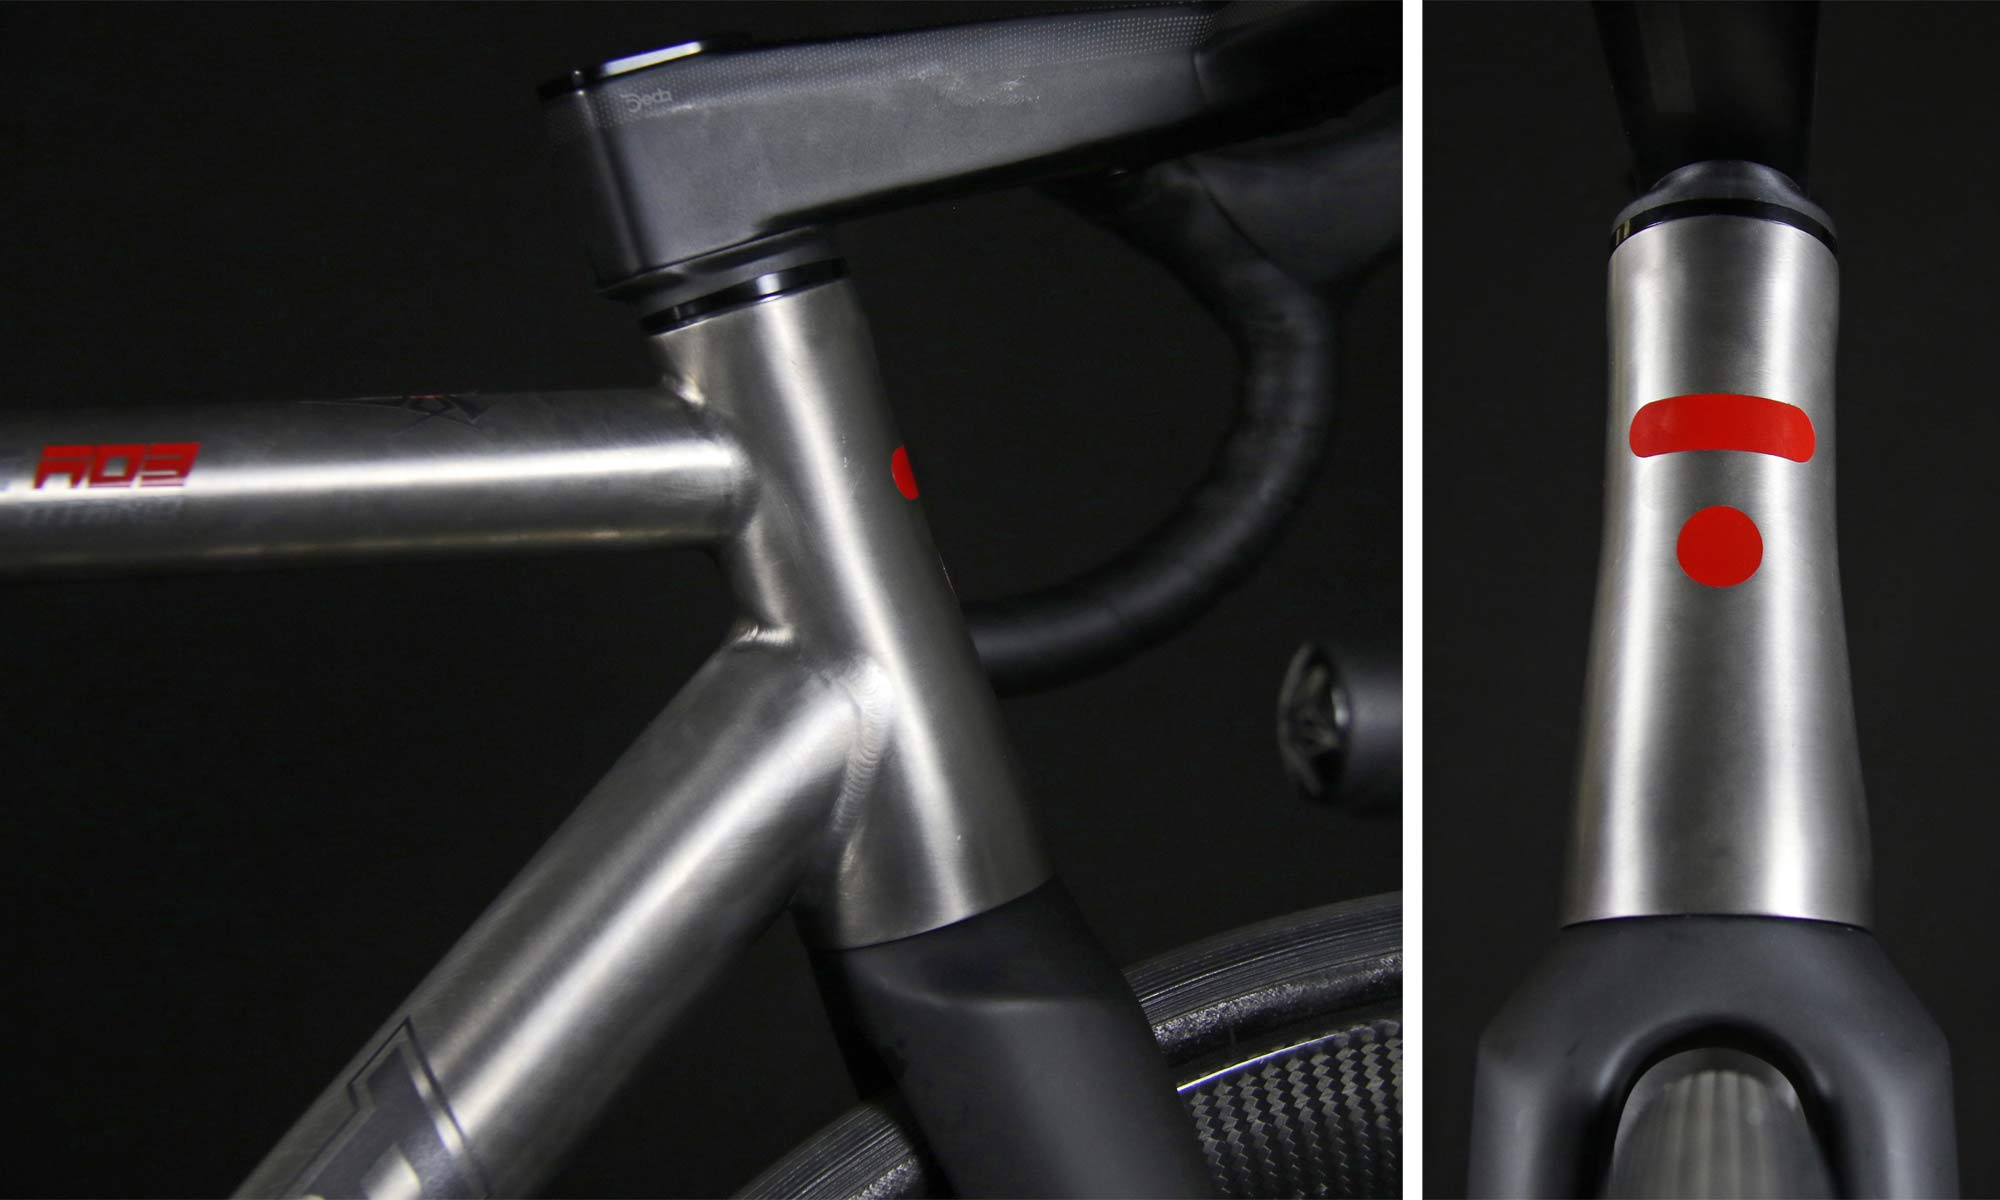 TRed Arcanide A03 Venti to road bike, fully-integrated internal cable routing custom titanium road bike,headtube details